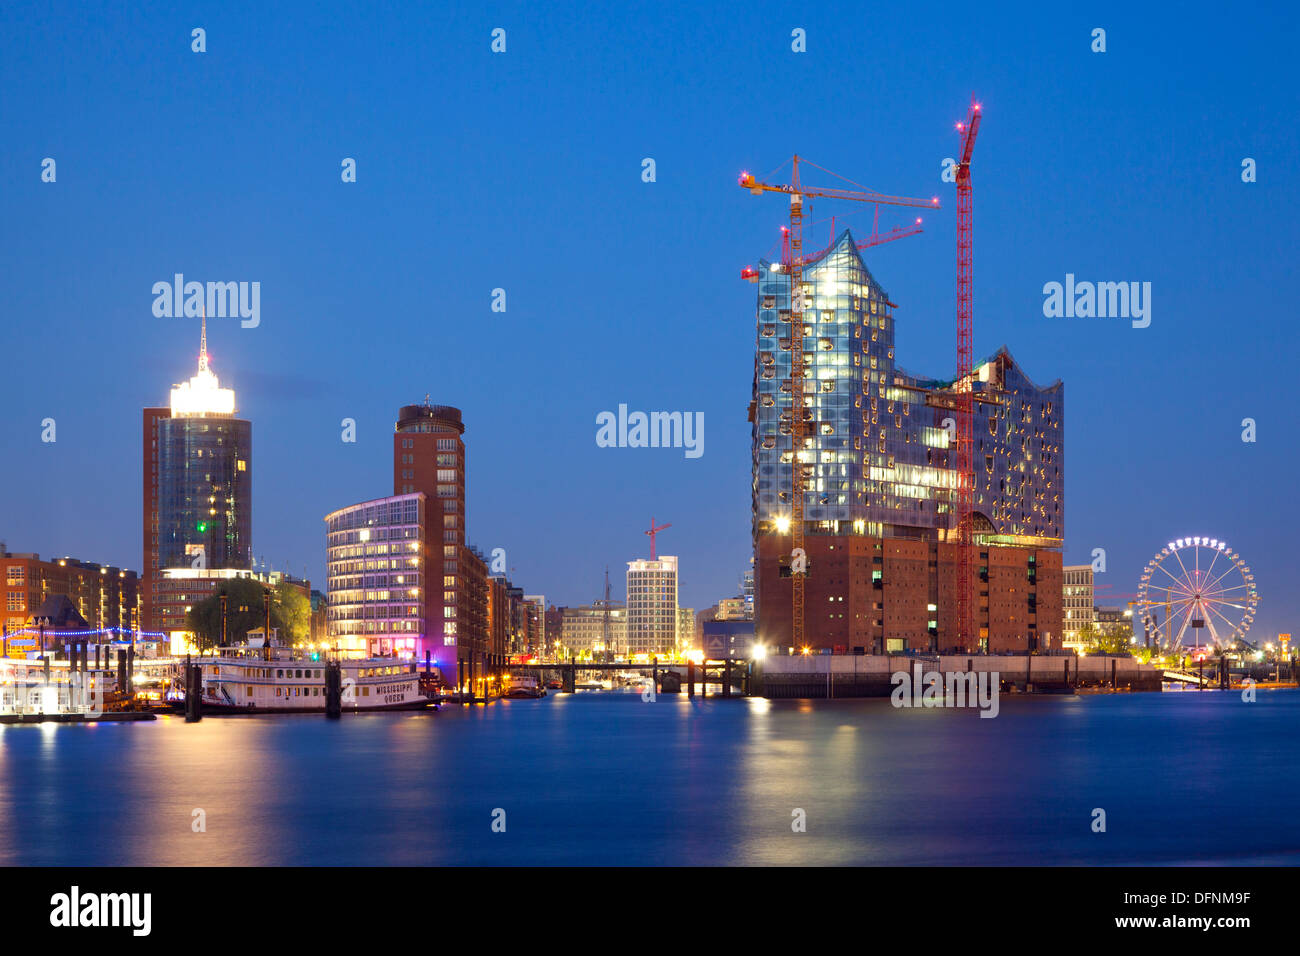 View of Hafen City and Elbphilharmonie at night, Hamburg, Germany, Europe - Stock Image